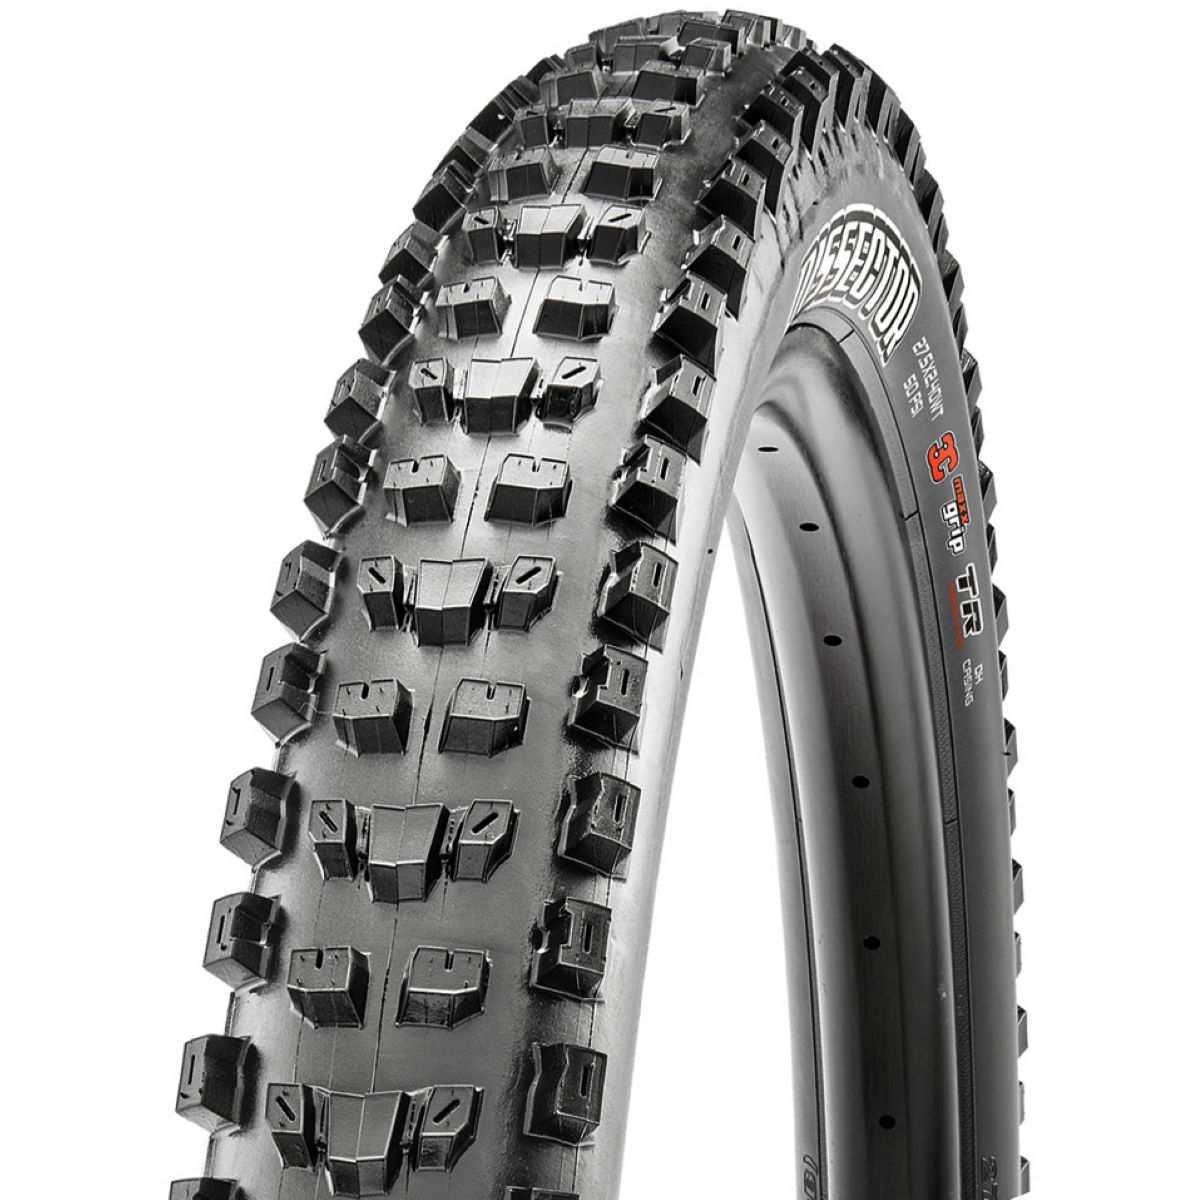 Maxxis Maxxis Dissector MTB Tyre - 3CT - EXO - TR   Tyres